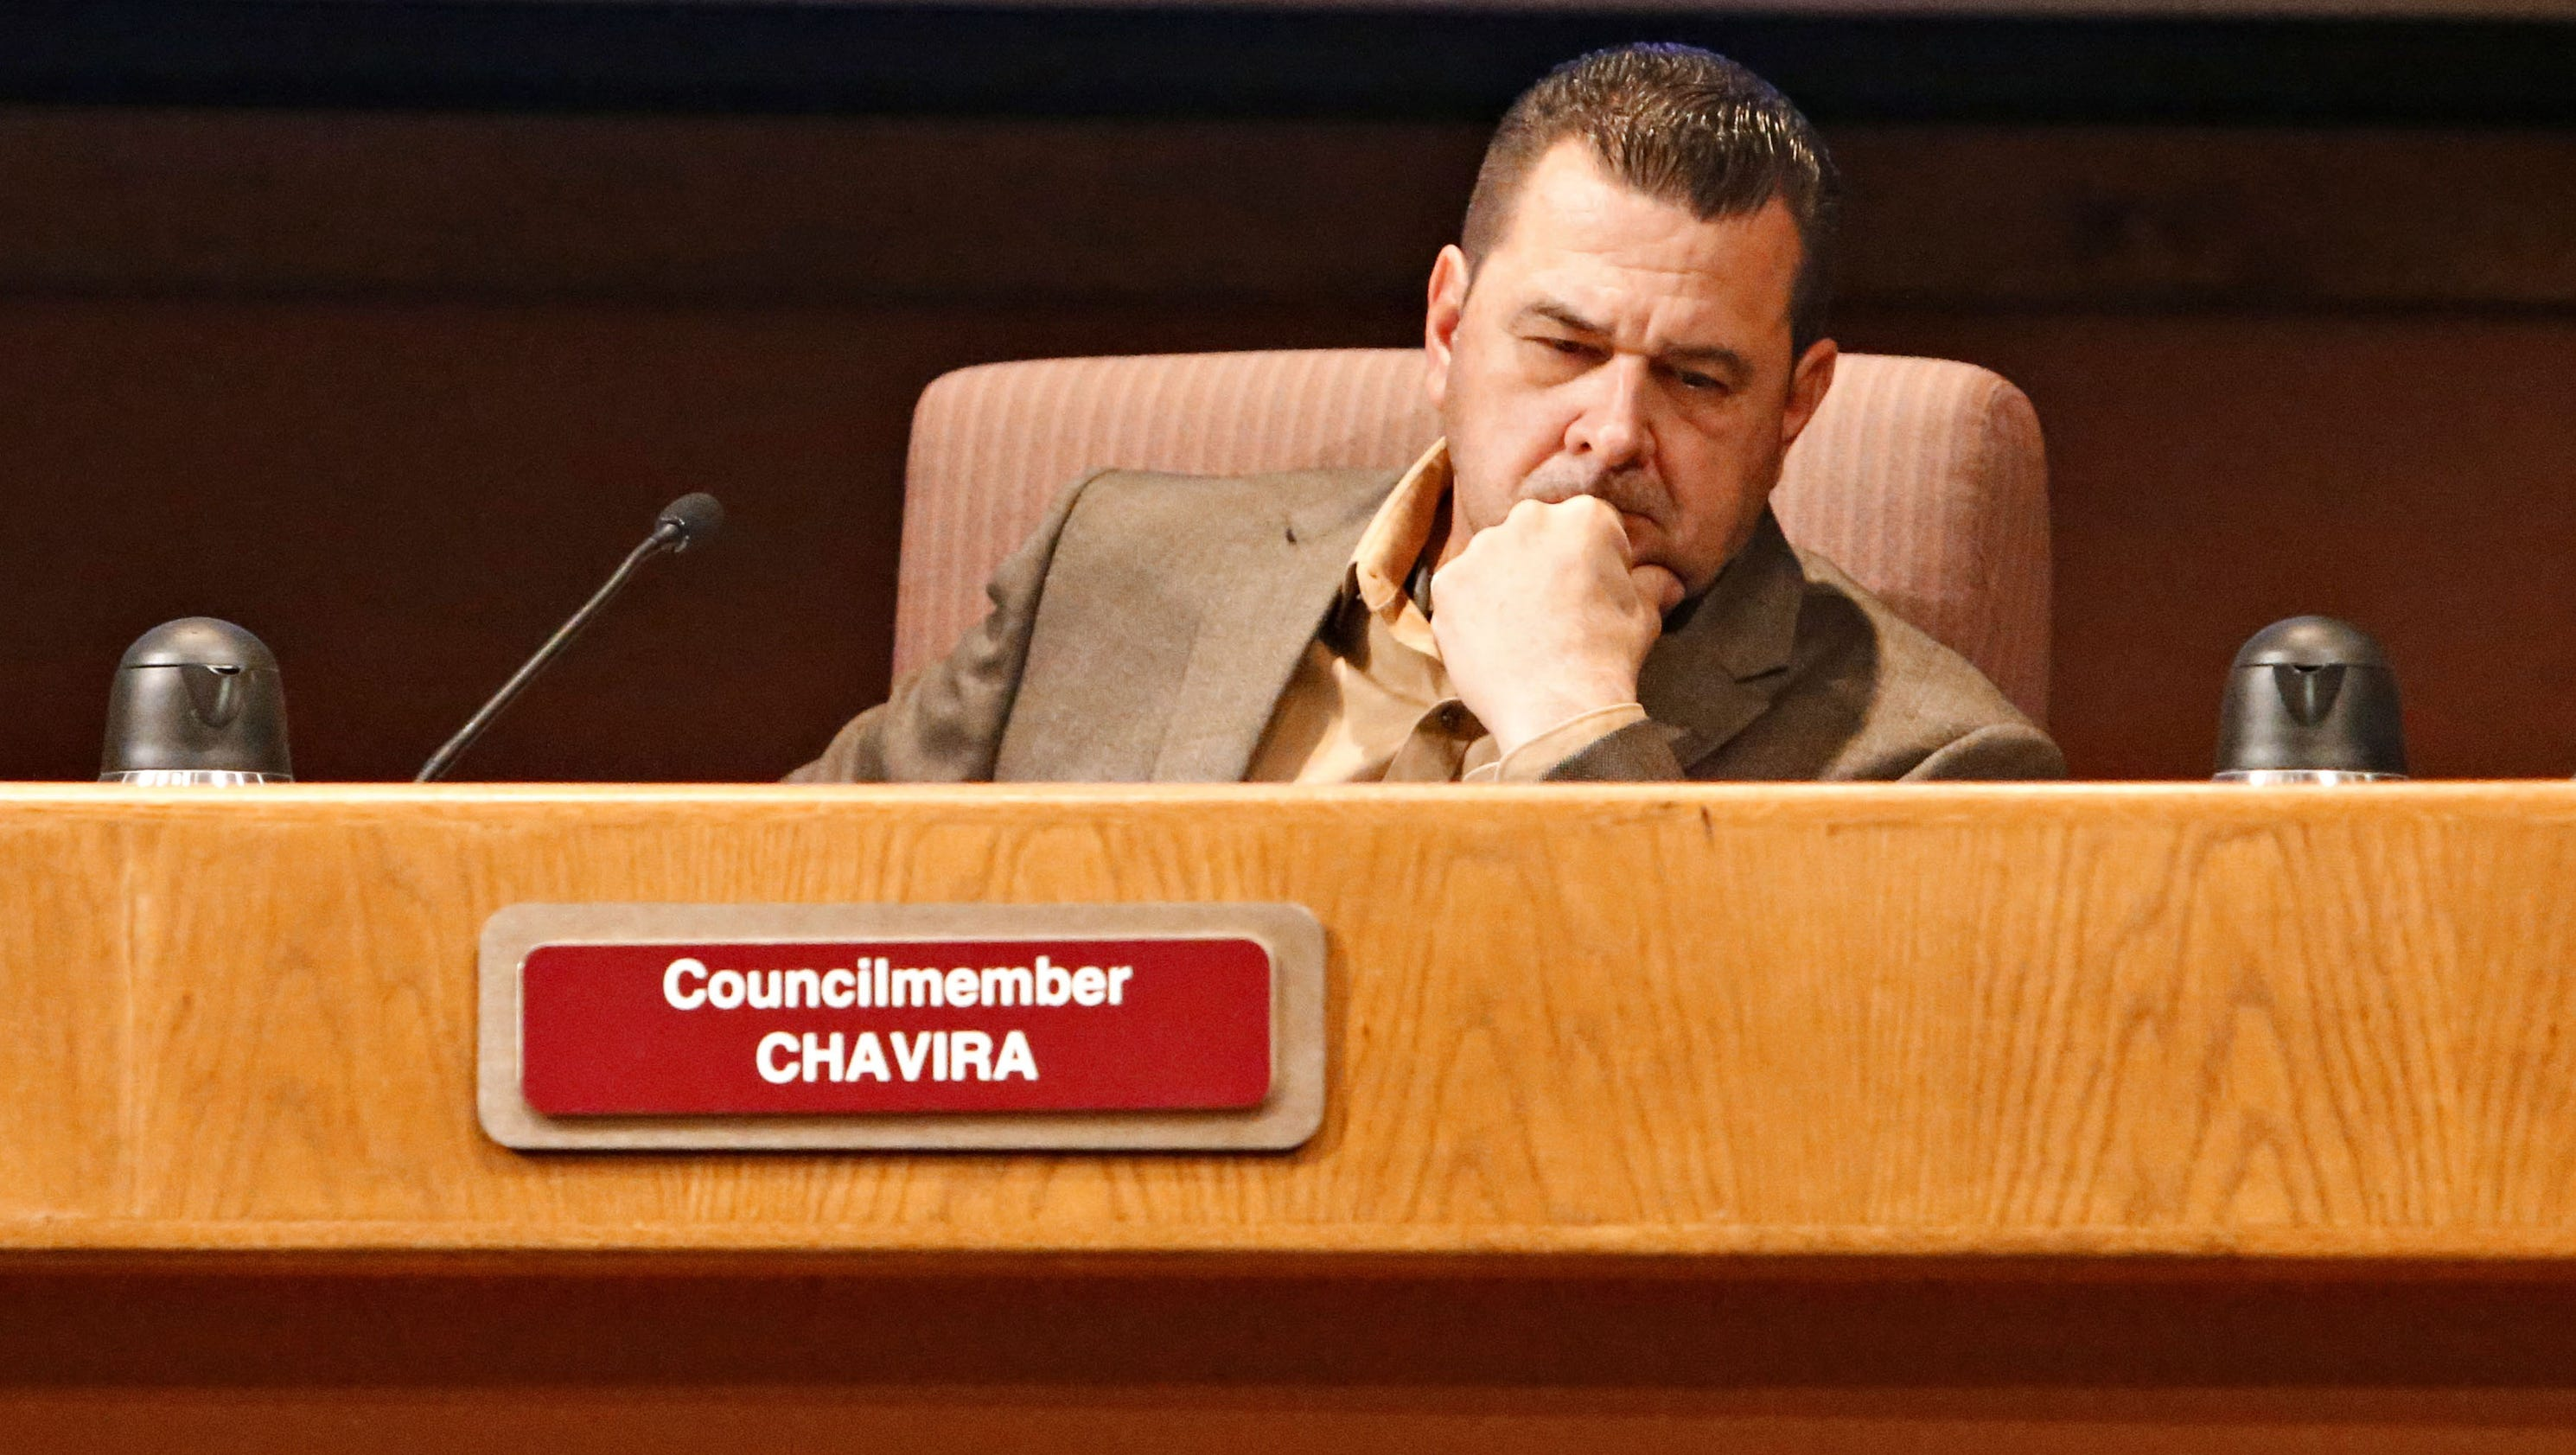 Proposed changes to Glendale council travel rules aim to increase public transparency